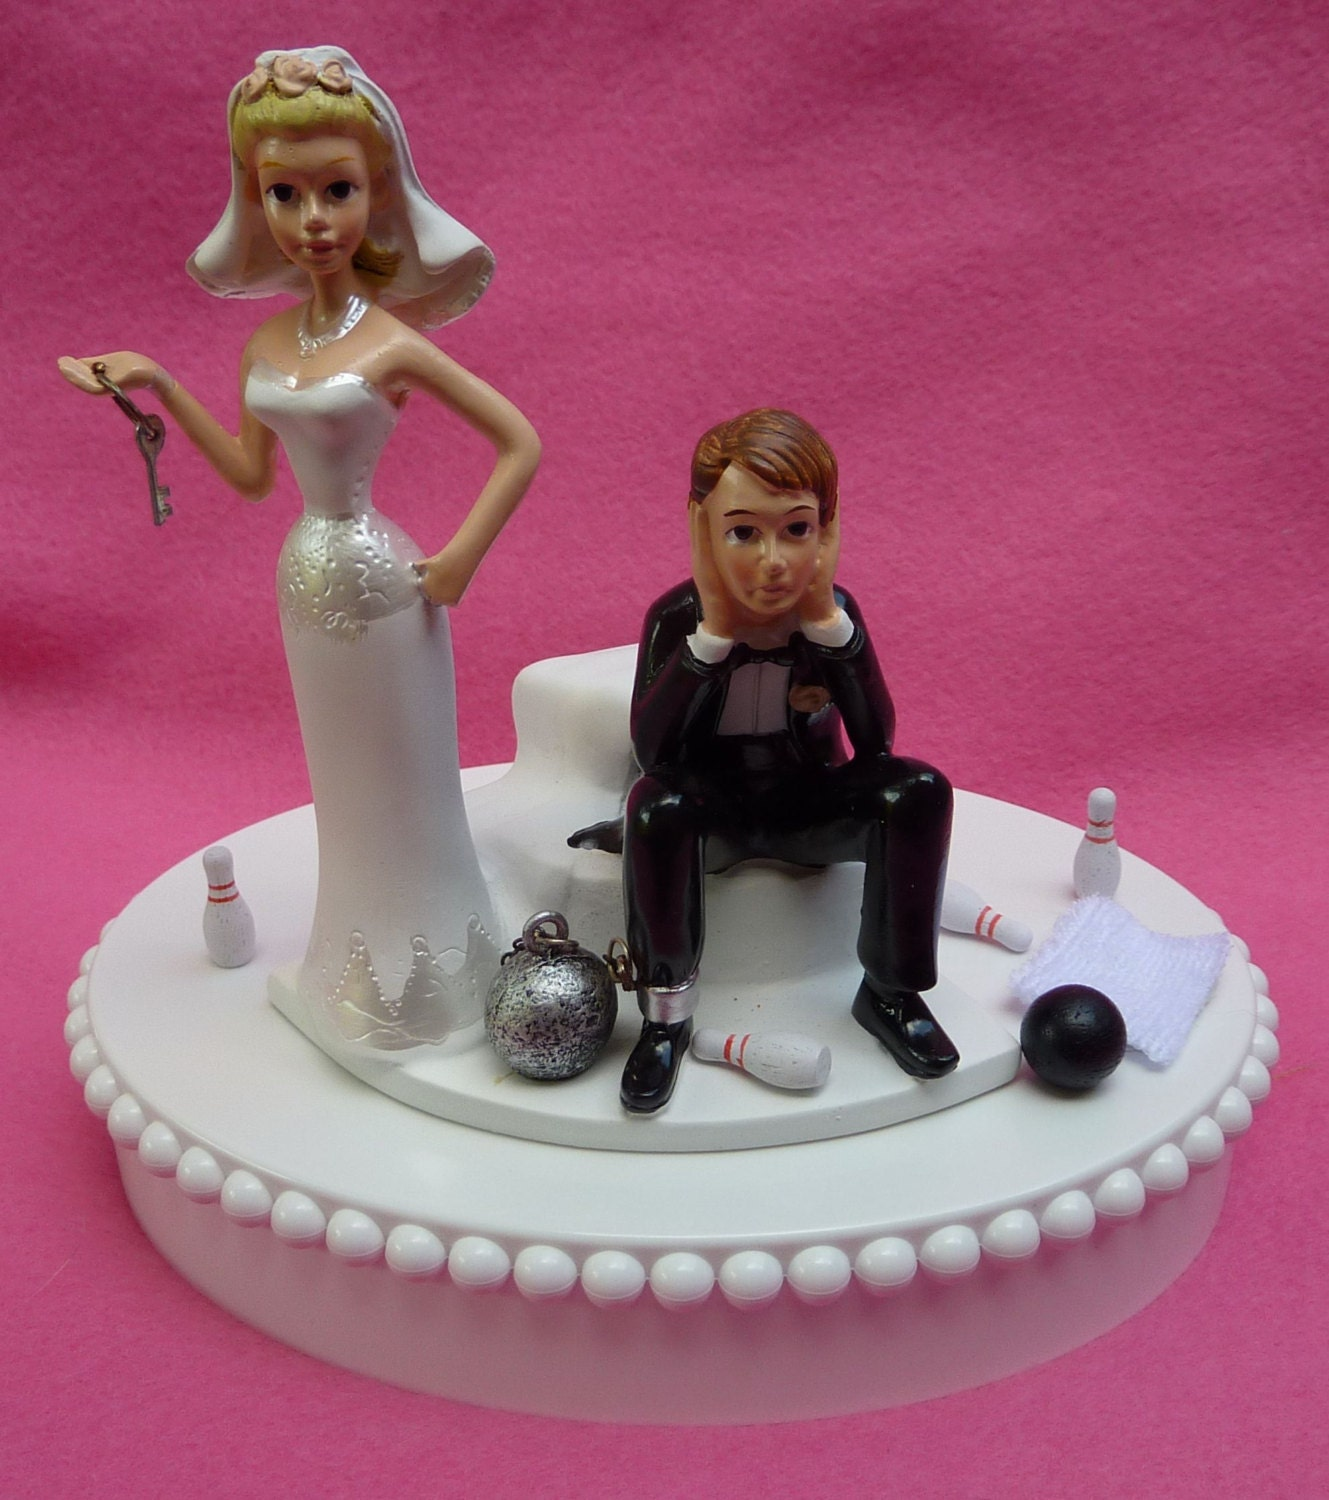 Wedding Cakes Toppers: Wedding Cake Topper Bowling Groom Ball And Chain Key Themed W/